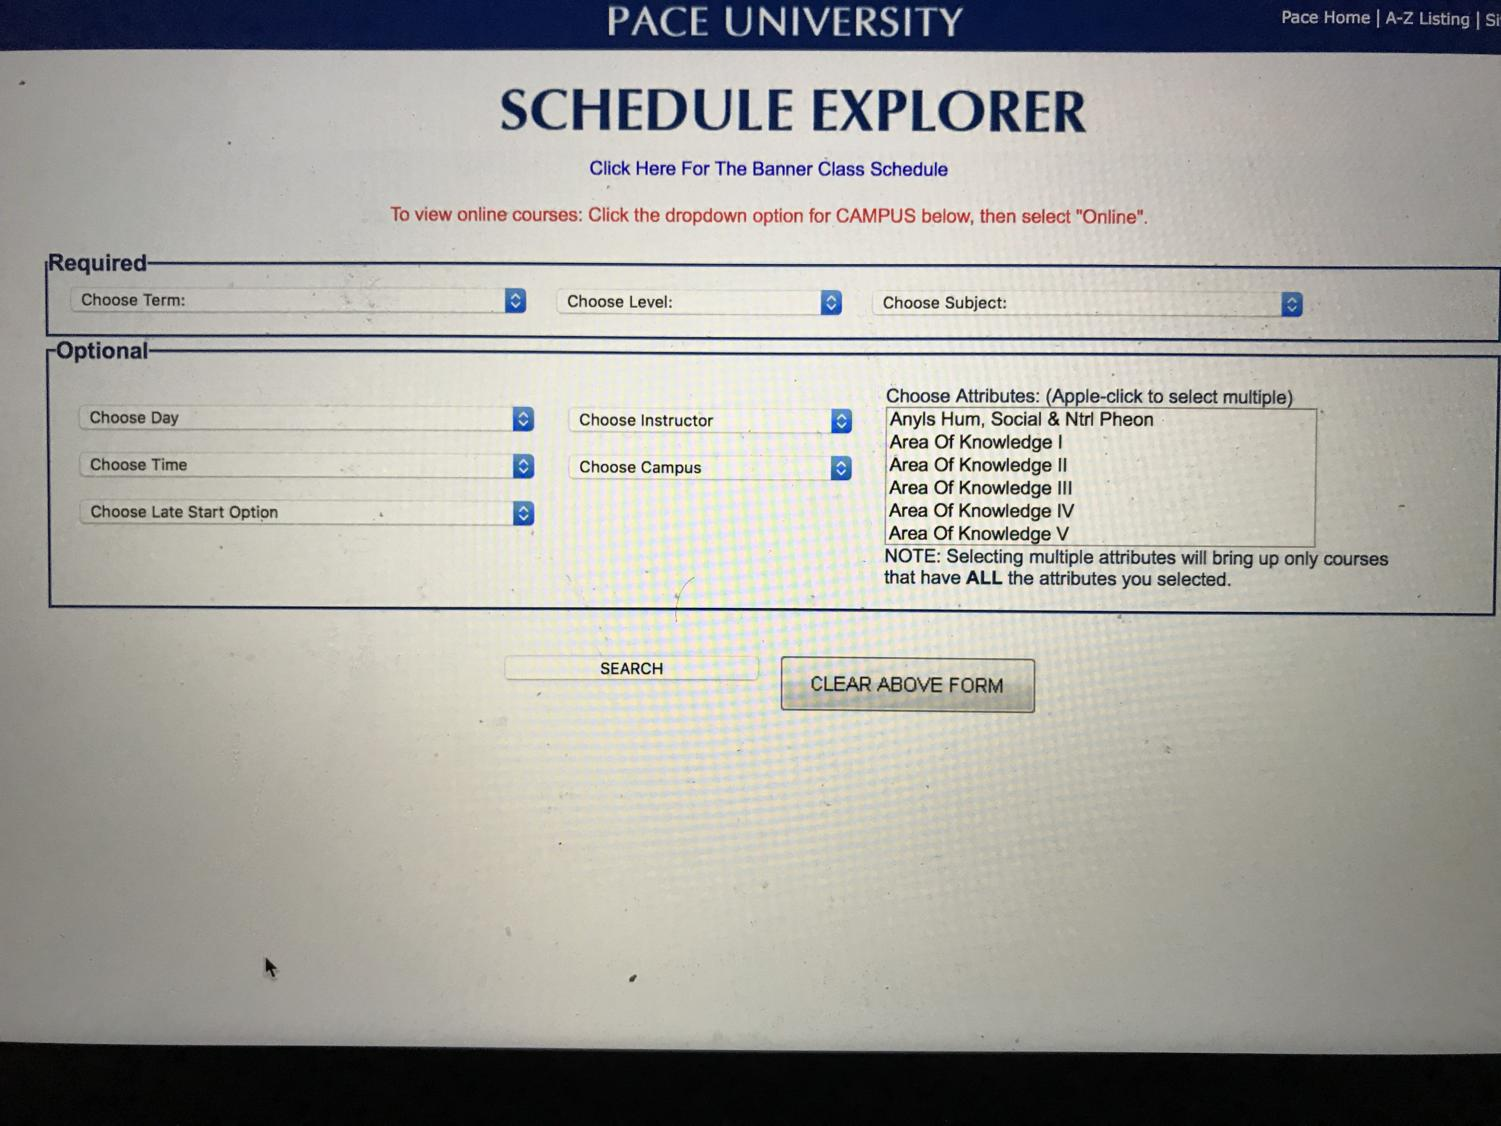 Schedule Explorer on Pace Portal, where to find classes offered. Photo taken by Josiah Darnell